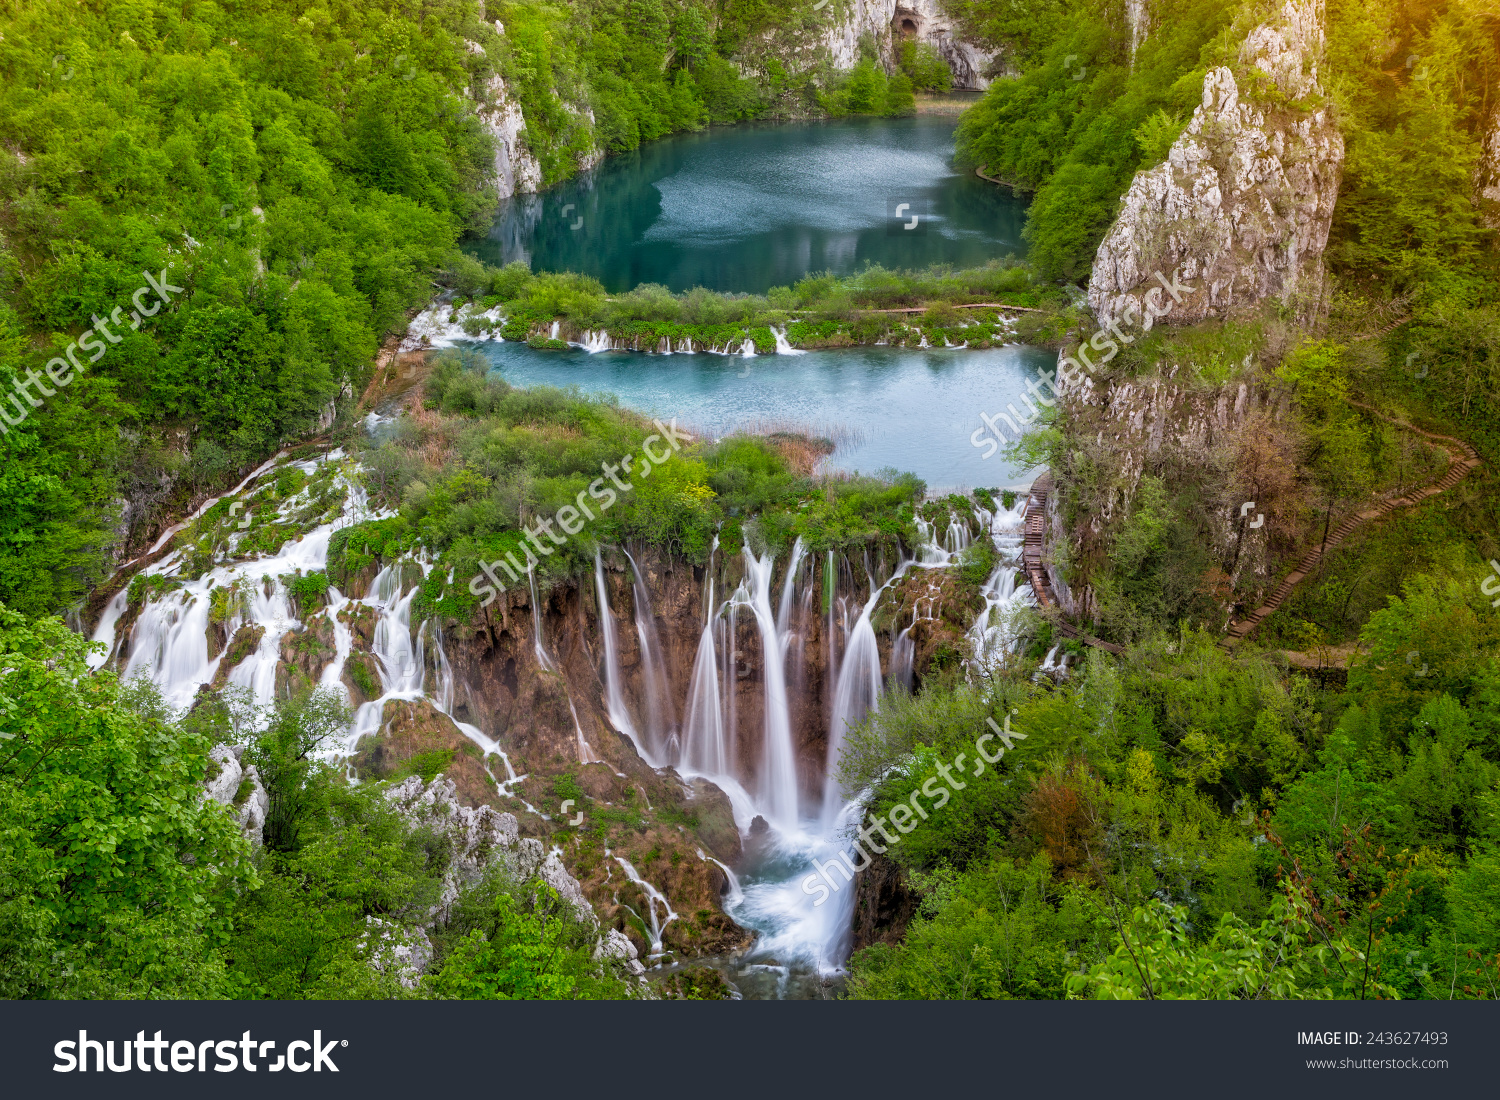 Plitvice Lakes National Park clipart #16, Download drawings